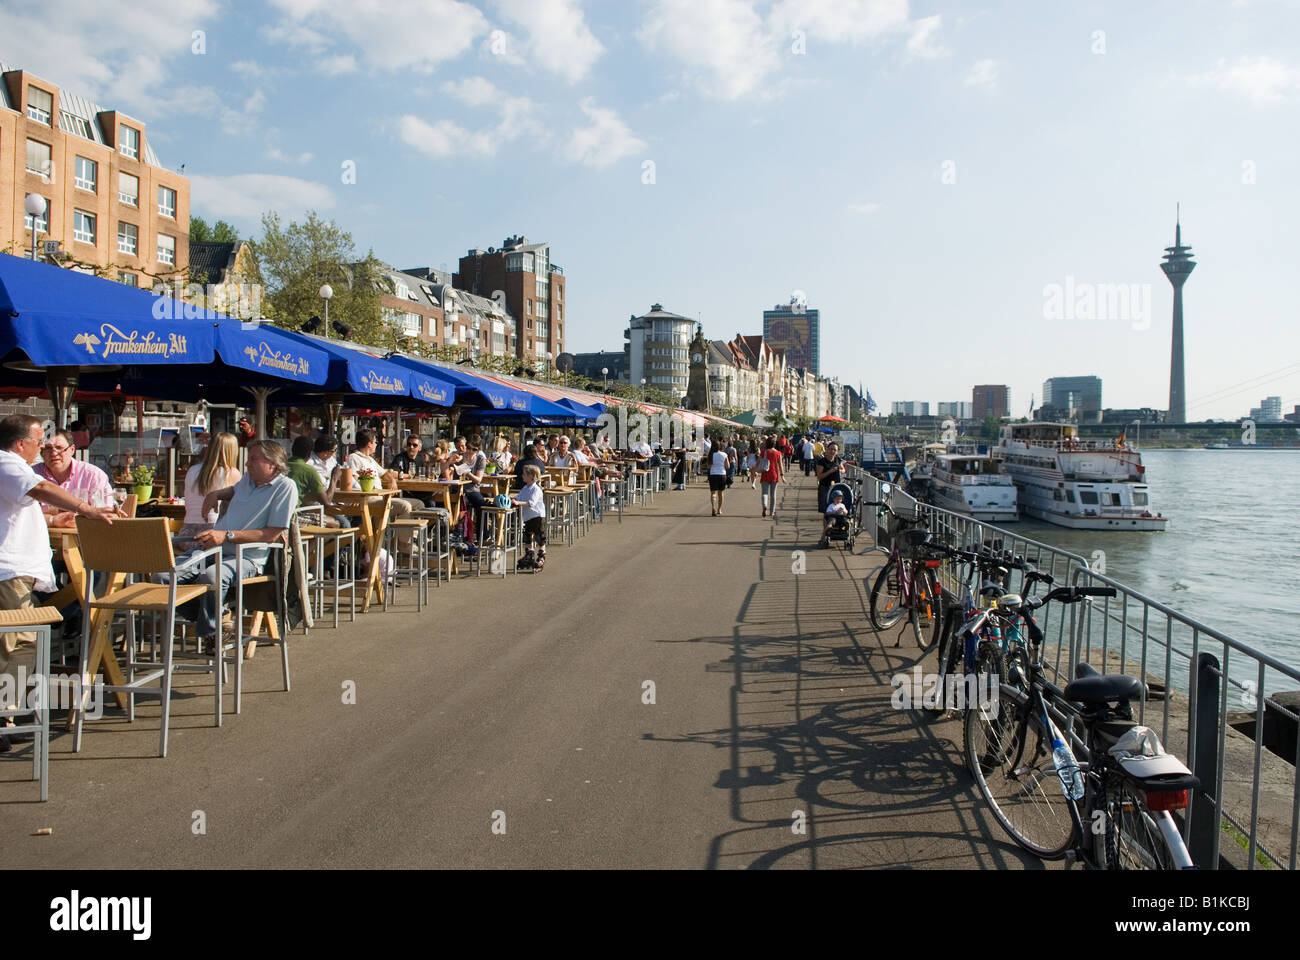 outdoor Pubs on the Riverside promenade of the Rhein River in Duesseldorf Germany Stock Photo